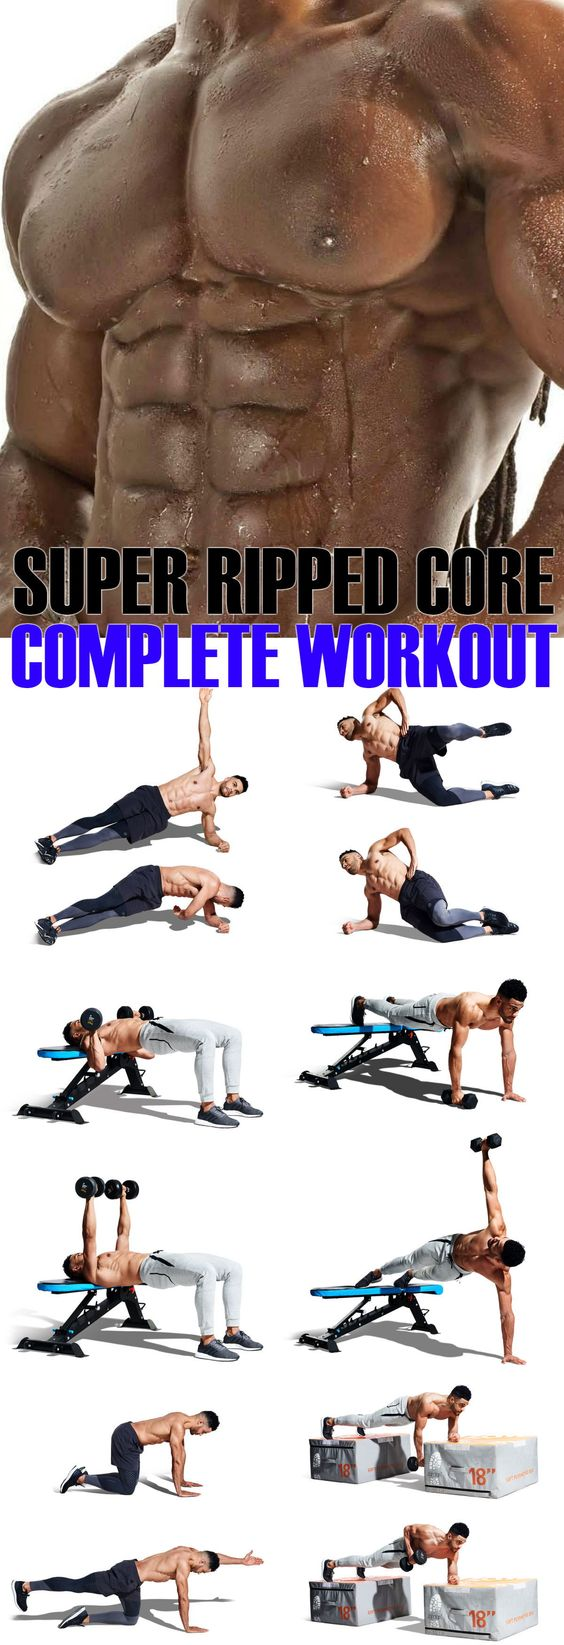 Super Ripped Core Complete Workout